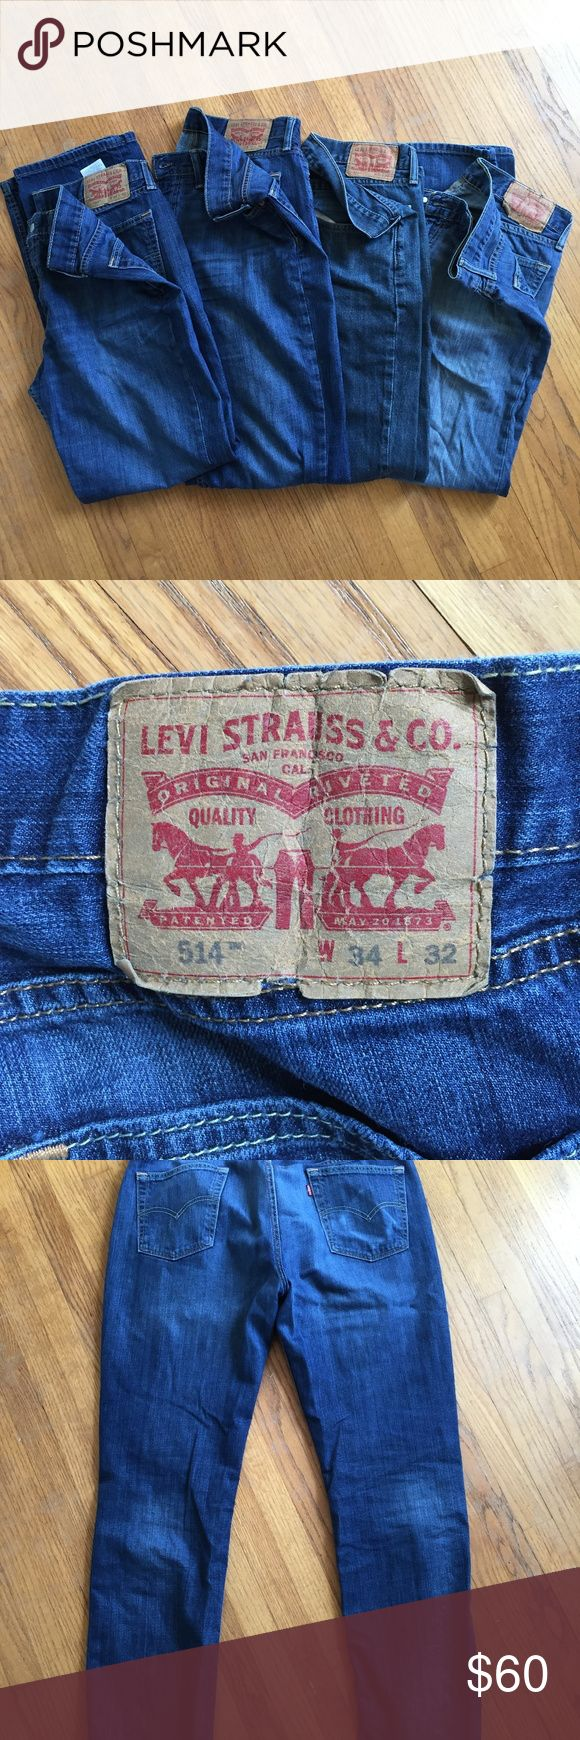 Levi's 514 straight fit  jean Lot/Bundle 34x32 4 Levi 514 straight fit Men's jeans for sale. In used condition. Willing to separate if interested.  Different washes as pictured.  2 most left jeans are same wash-medium/dark 2nd pair from right is darker wash furthest most right pair is lighter was/faded. Levi's Jeans Straight